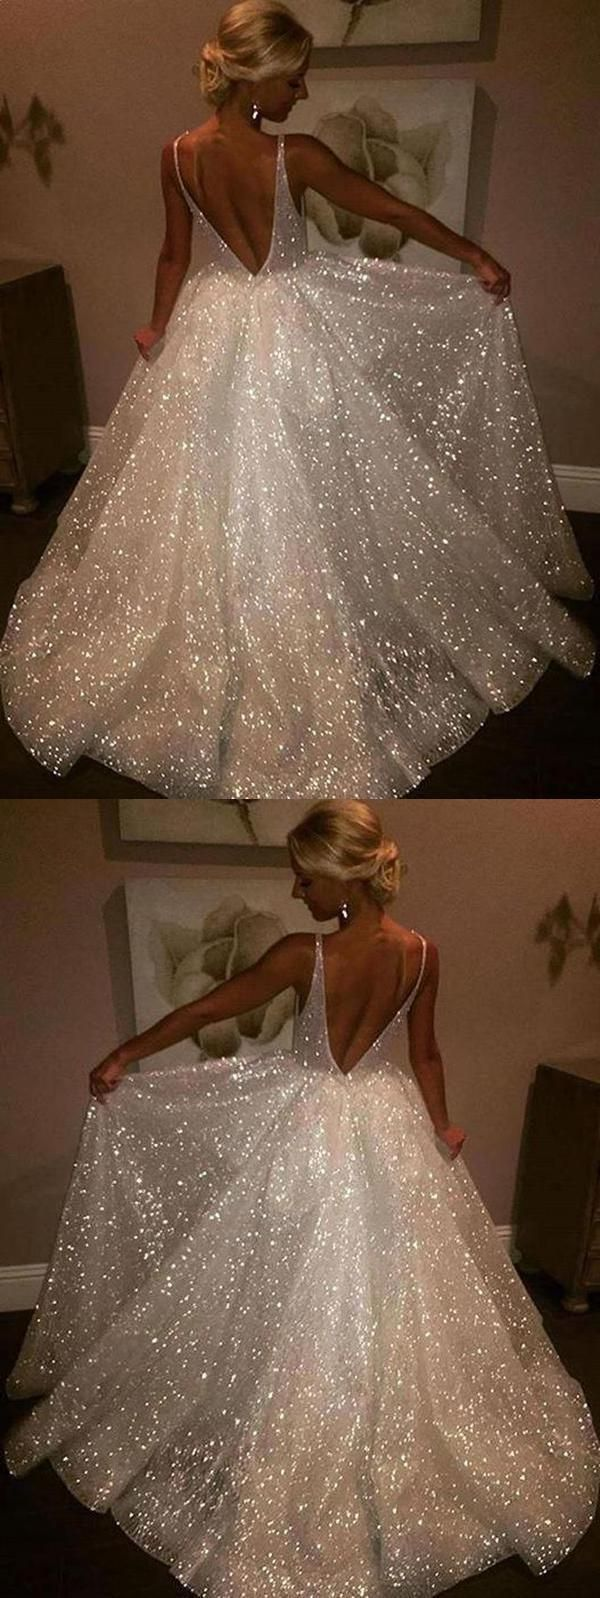 Hot Sale Outstanding A-Line Prom Dresses, Modest Prom Dresses, Lace Prom Dresses, Prom Dresses Long #modestprom